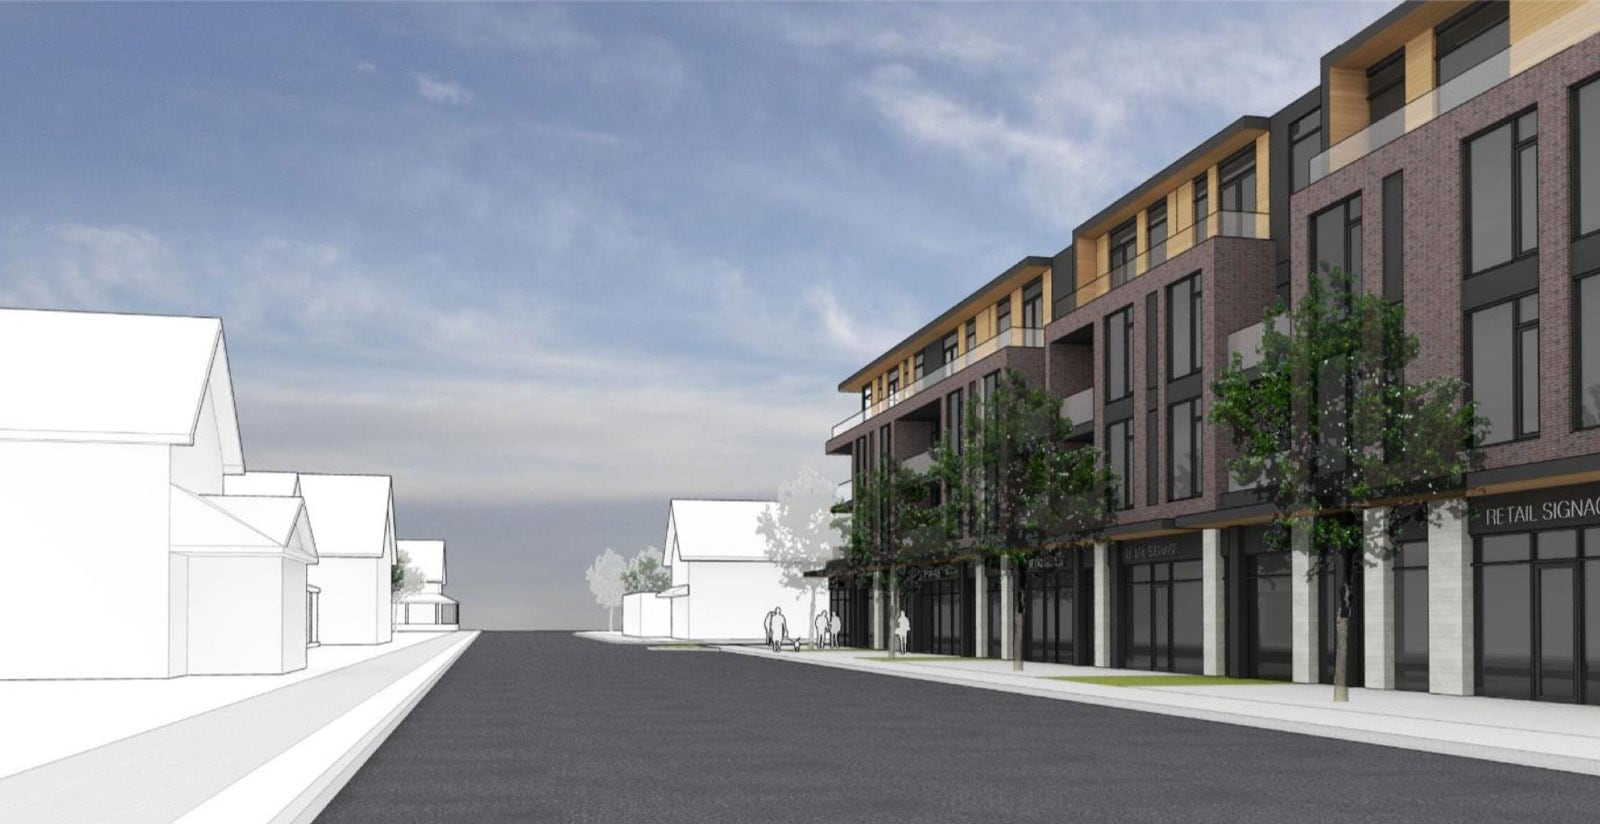 View of the proposed development looking north on Stittsville Main Street